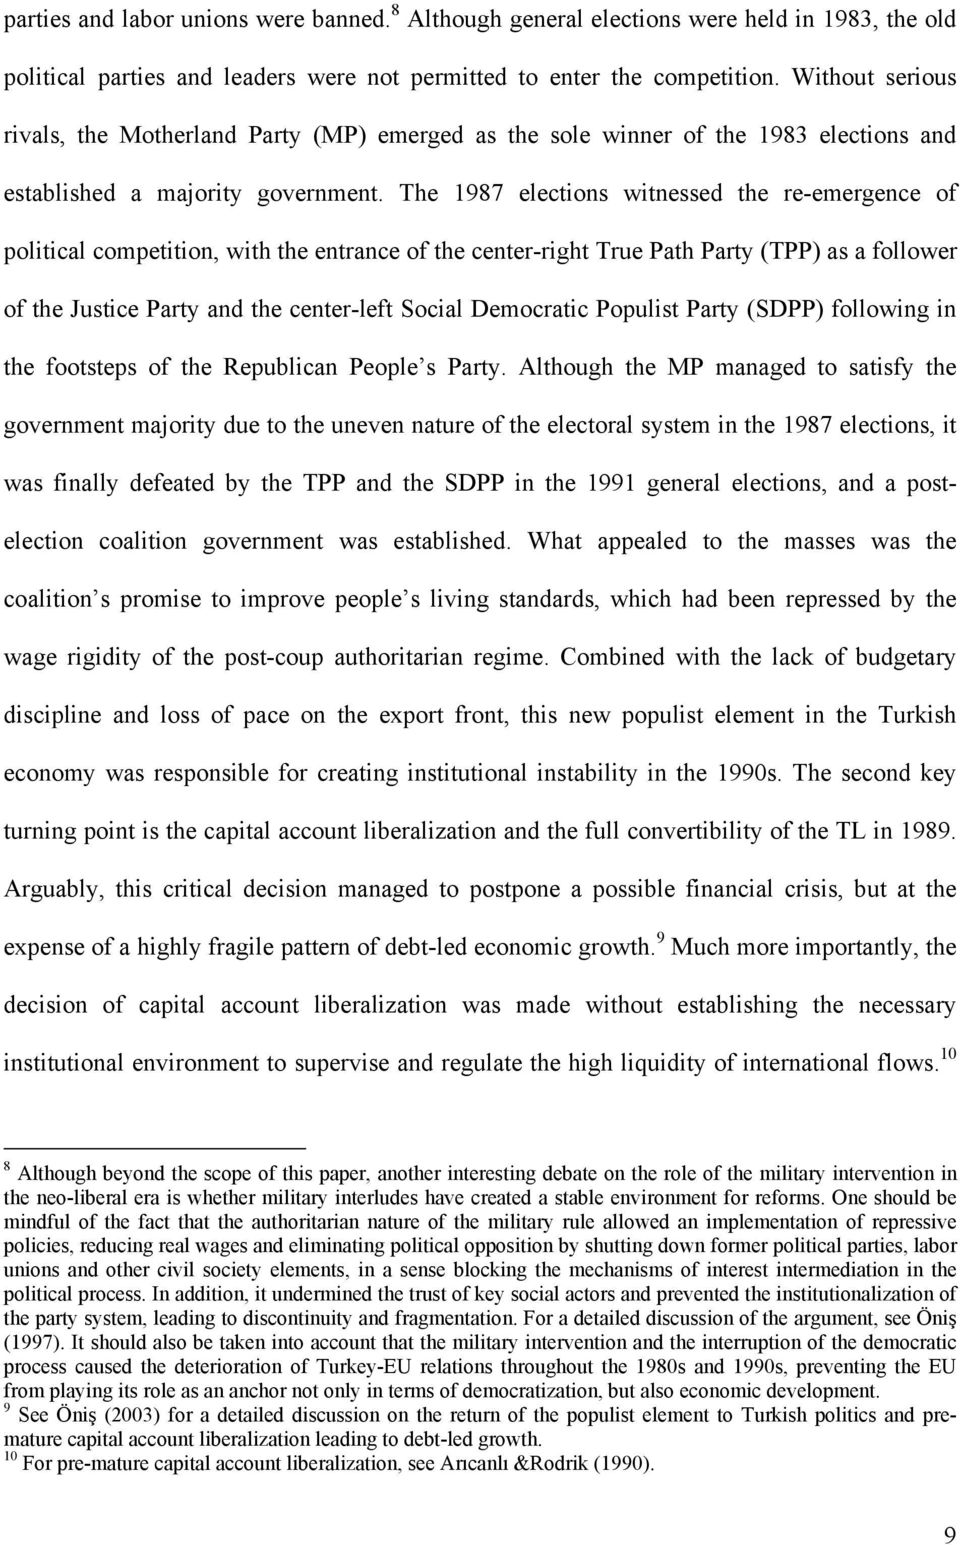 The 1987 elections witnessed the re-emergence of political competition, with the entrance of the center-right True Path Party (TPP) as a follower of the Justice Party and the center-left Social